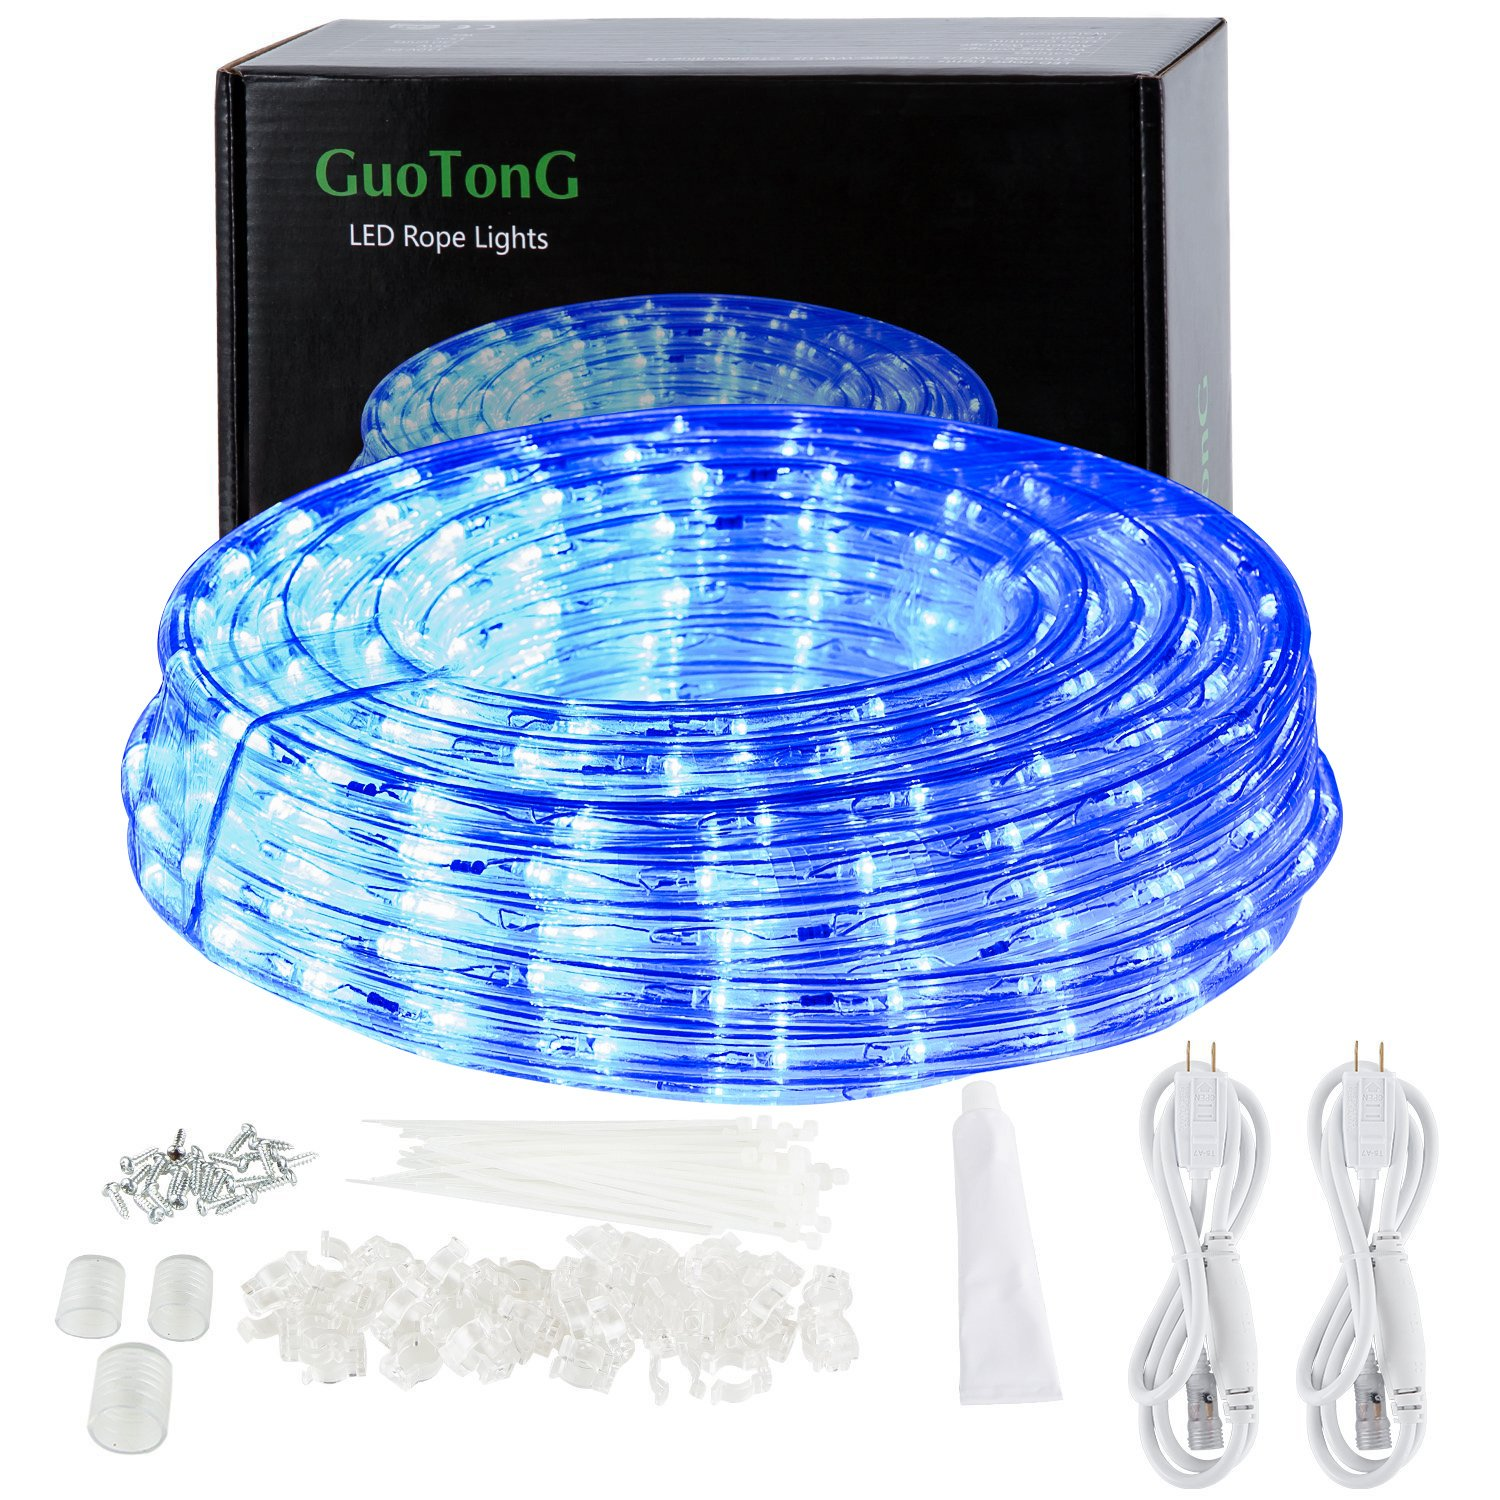 GuoTonG 50ft/15m Plugin Rope Lights, 540 Flexible Blue LEDs, 110V, 2 Wires, Waterproof, Connectable, Power Plug Built-in Fuse Design, Indoor/Outdoor Use, Ideal for Backyards, Decorative Lighting